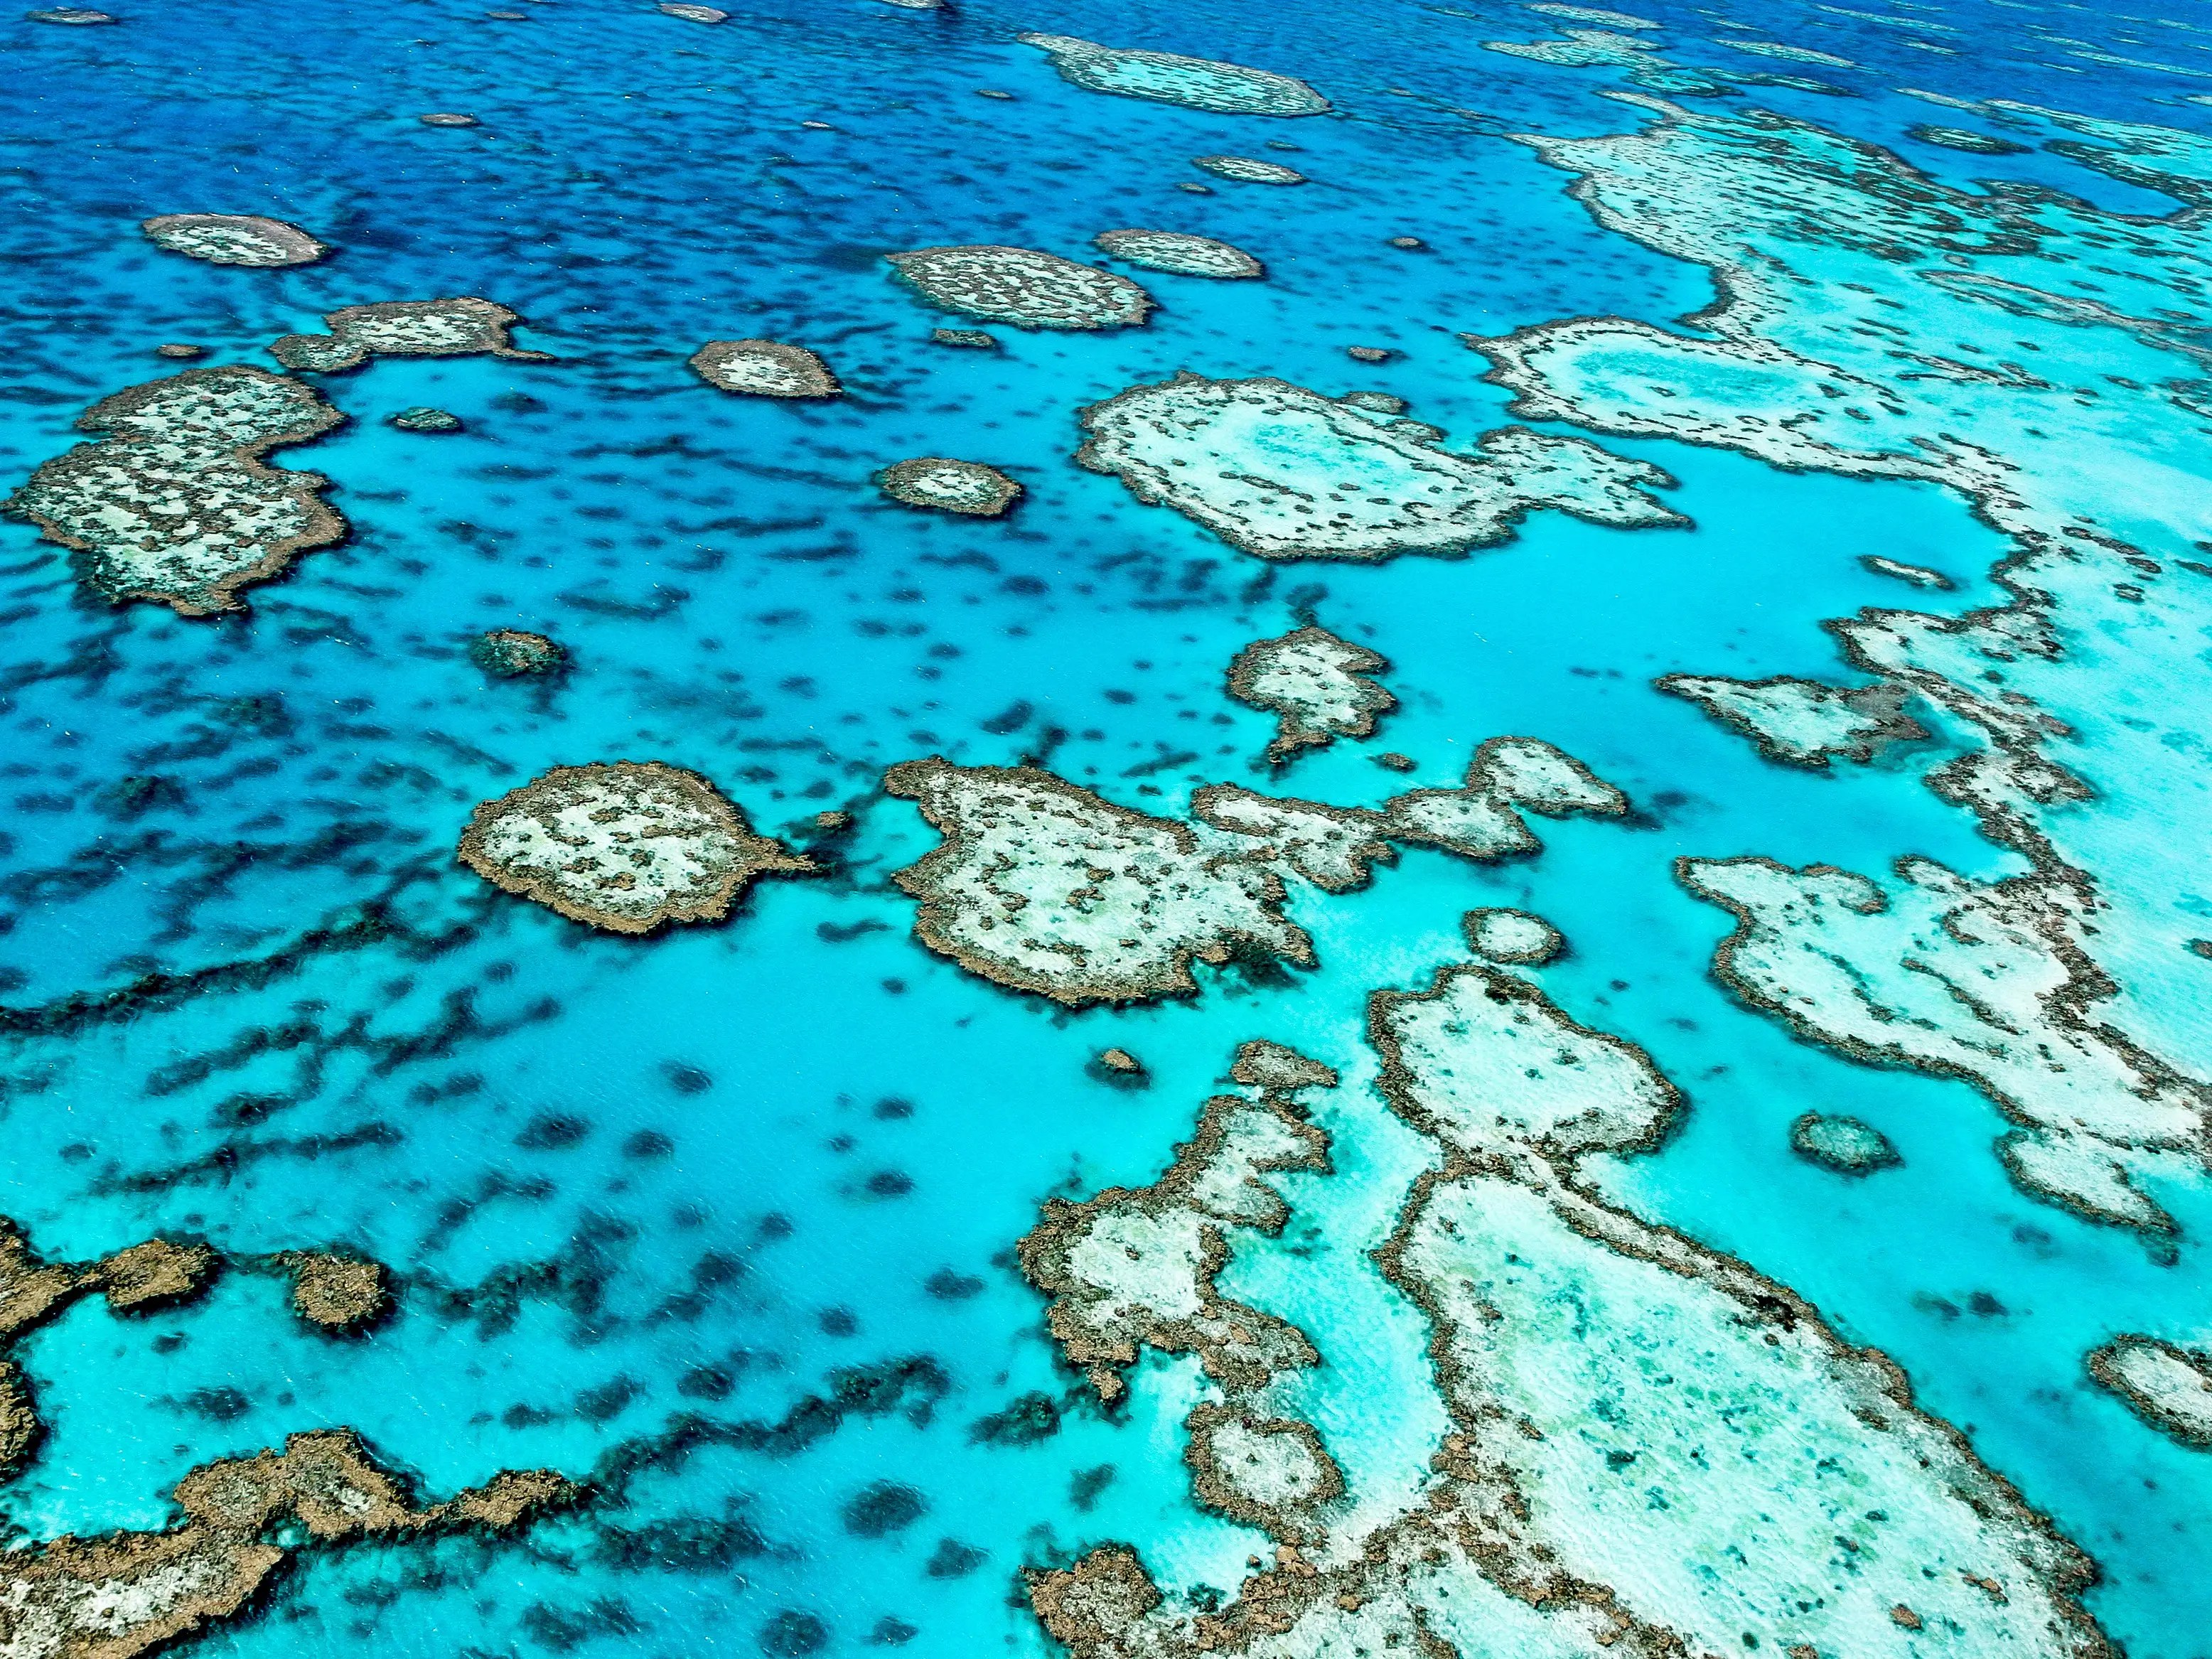 2. Great Barrier Reef, Australia